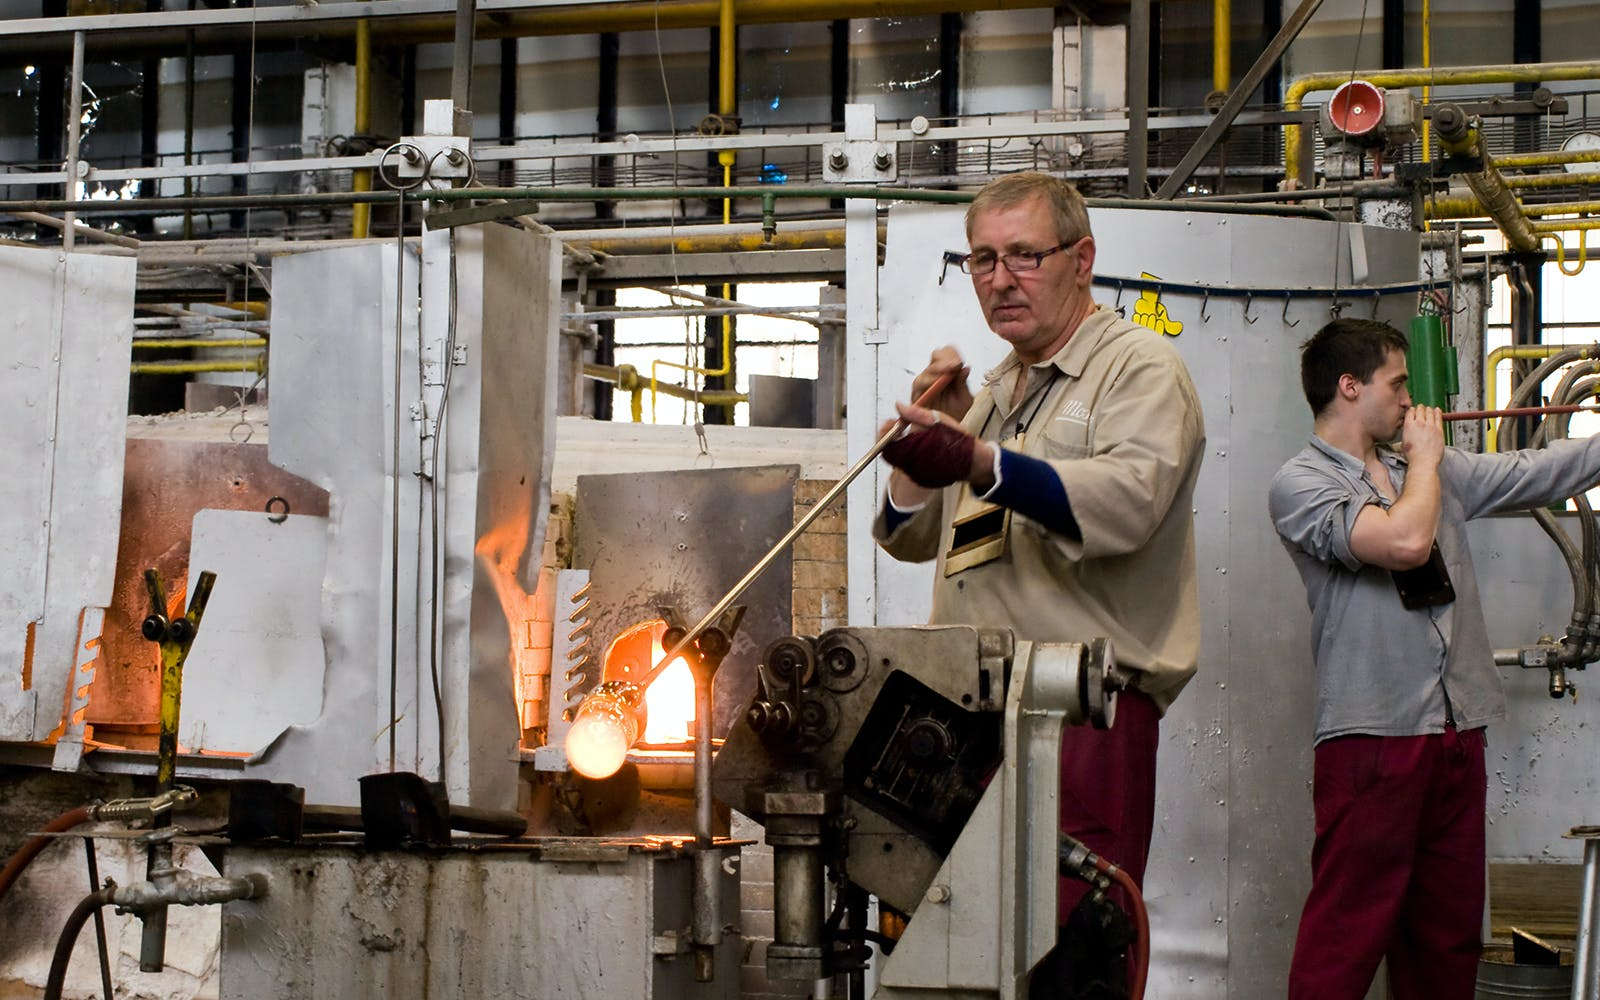 full day tour of karlovy vary with access to moser glassworks factory-3